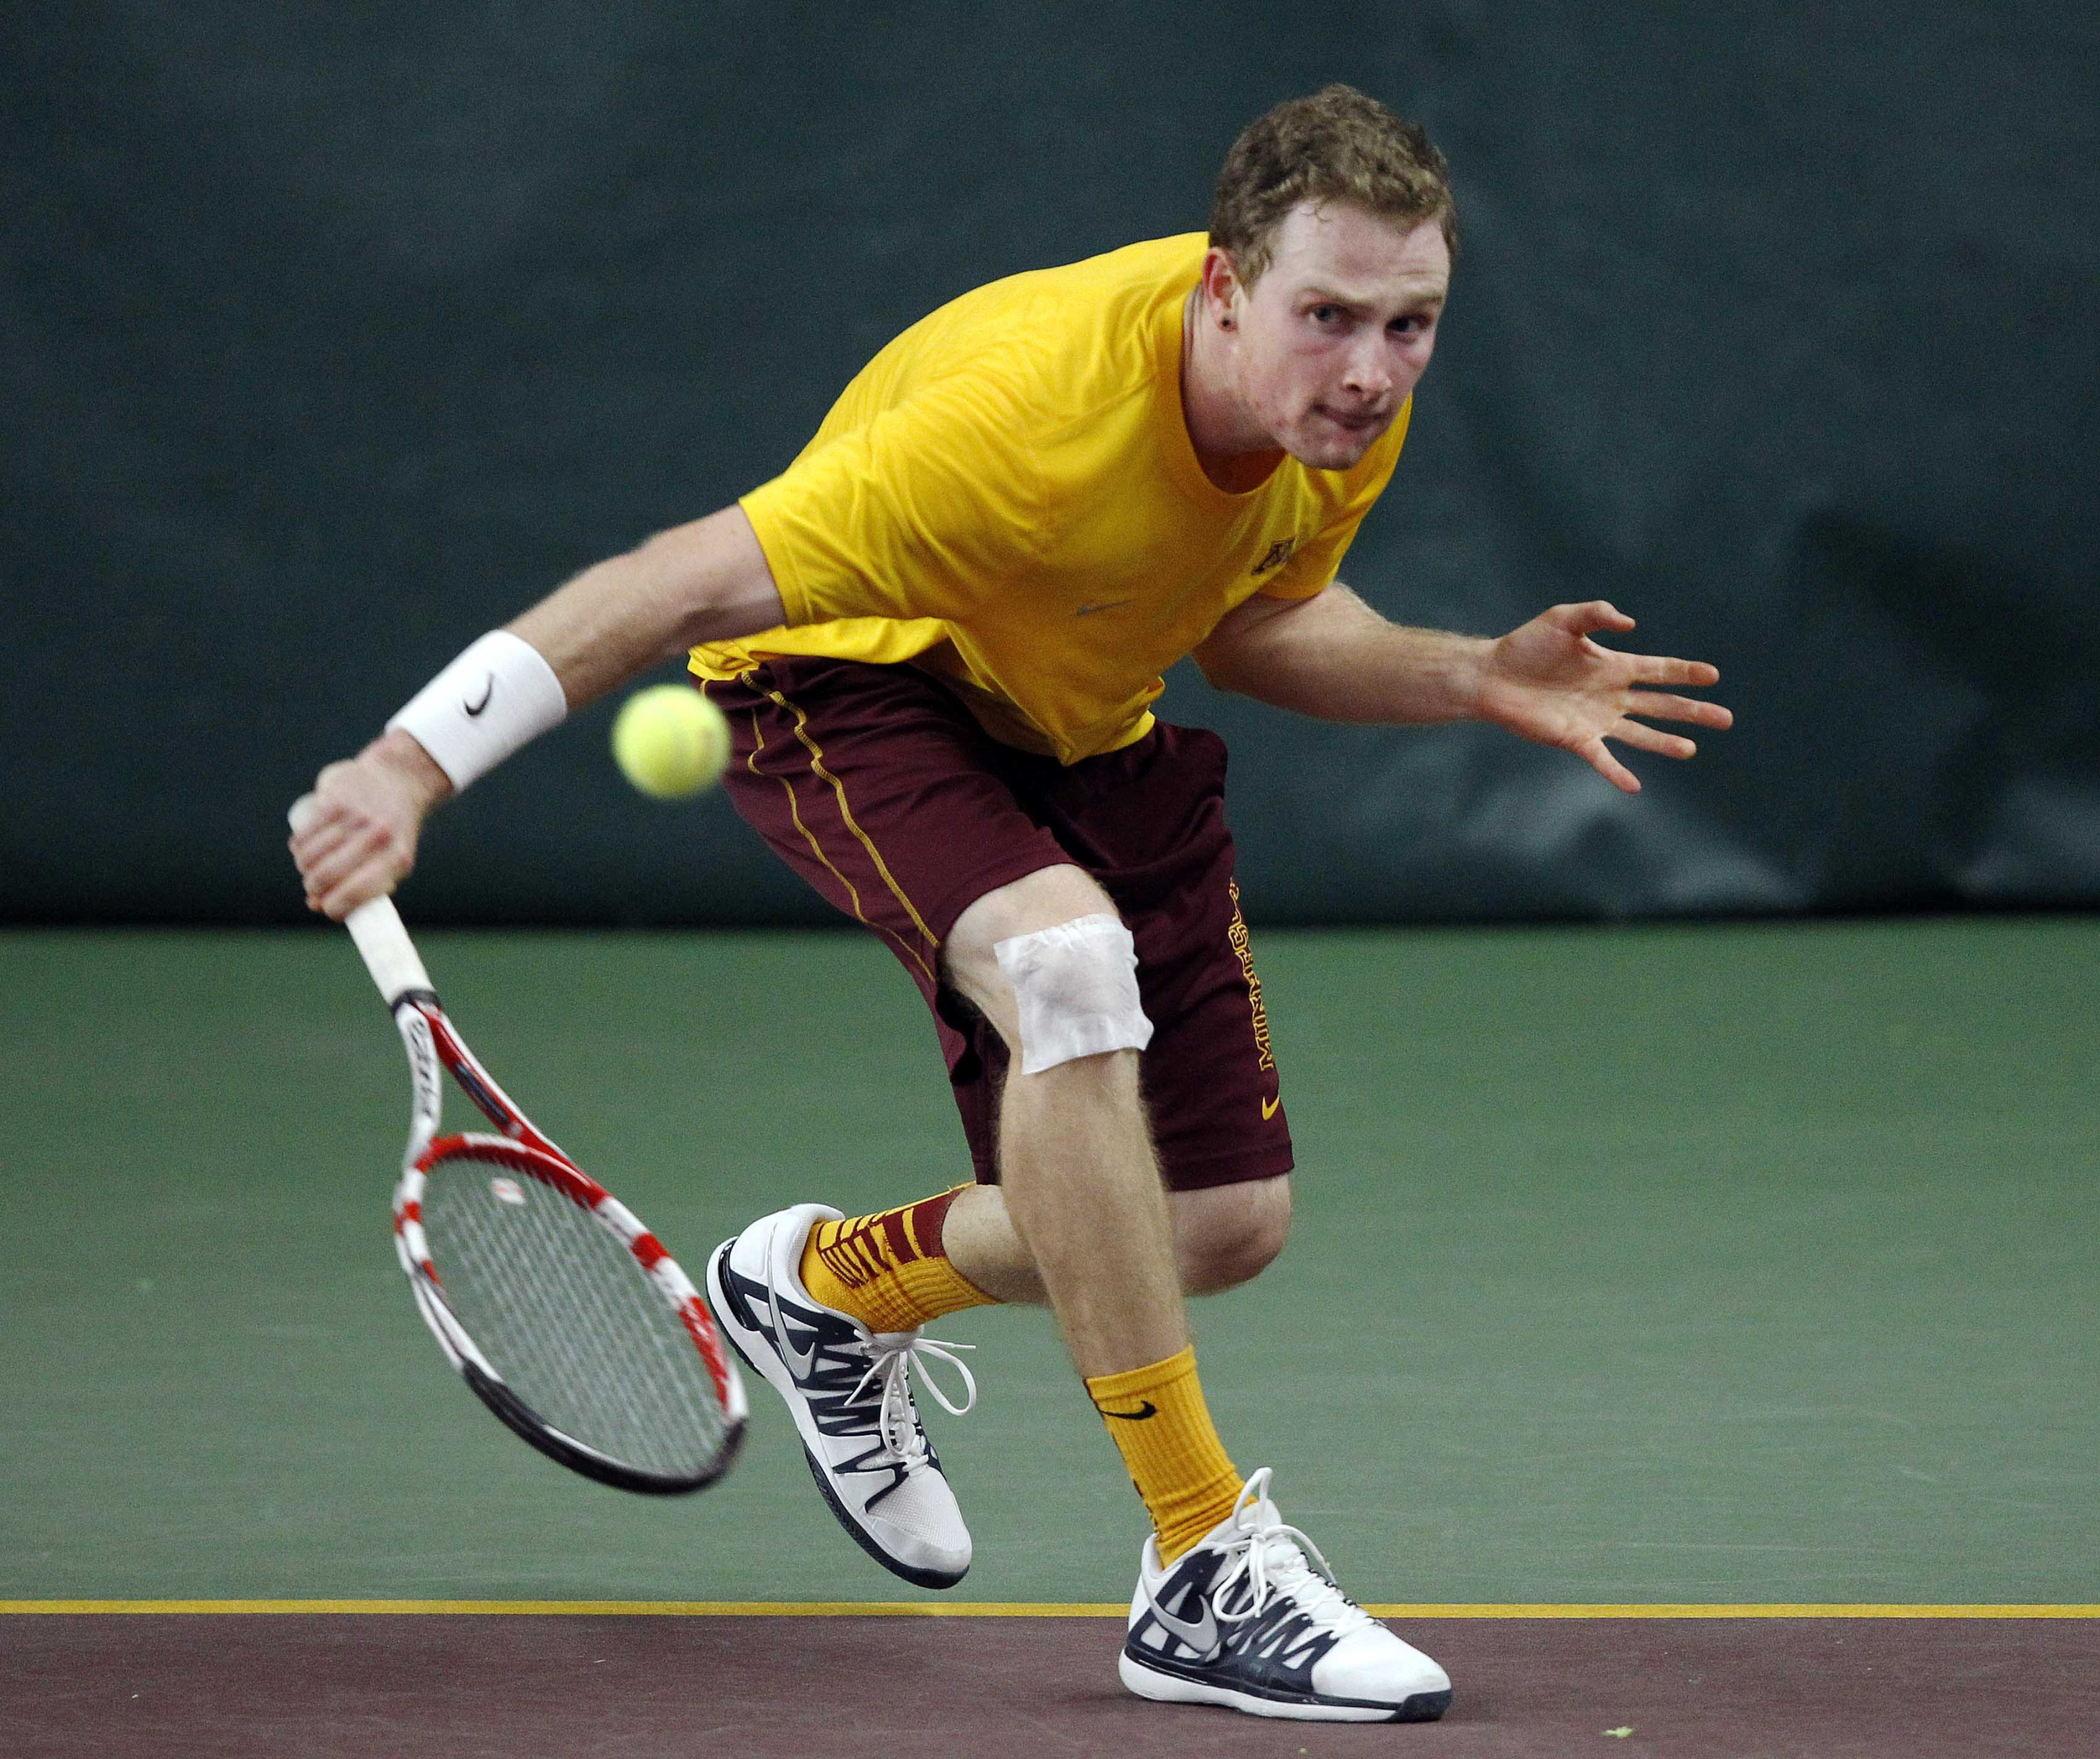 Minnesota Falls to Cowboys in First Match - University of